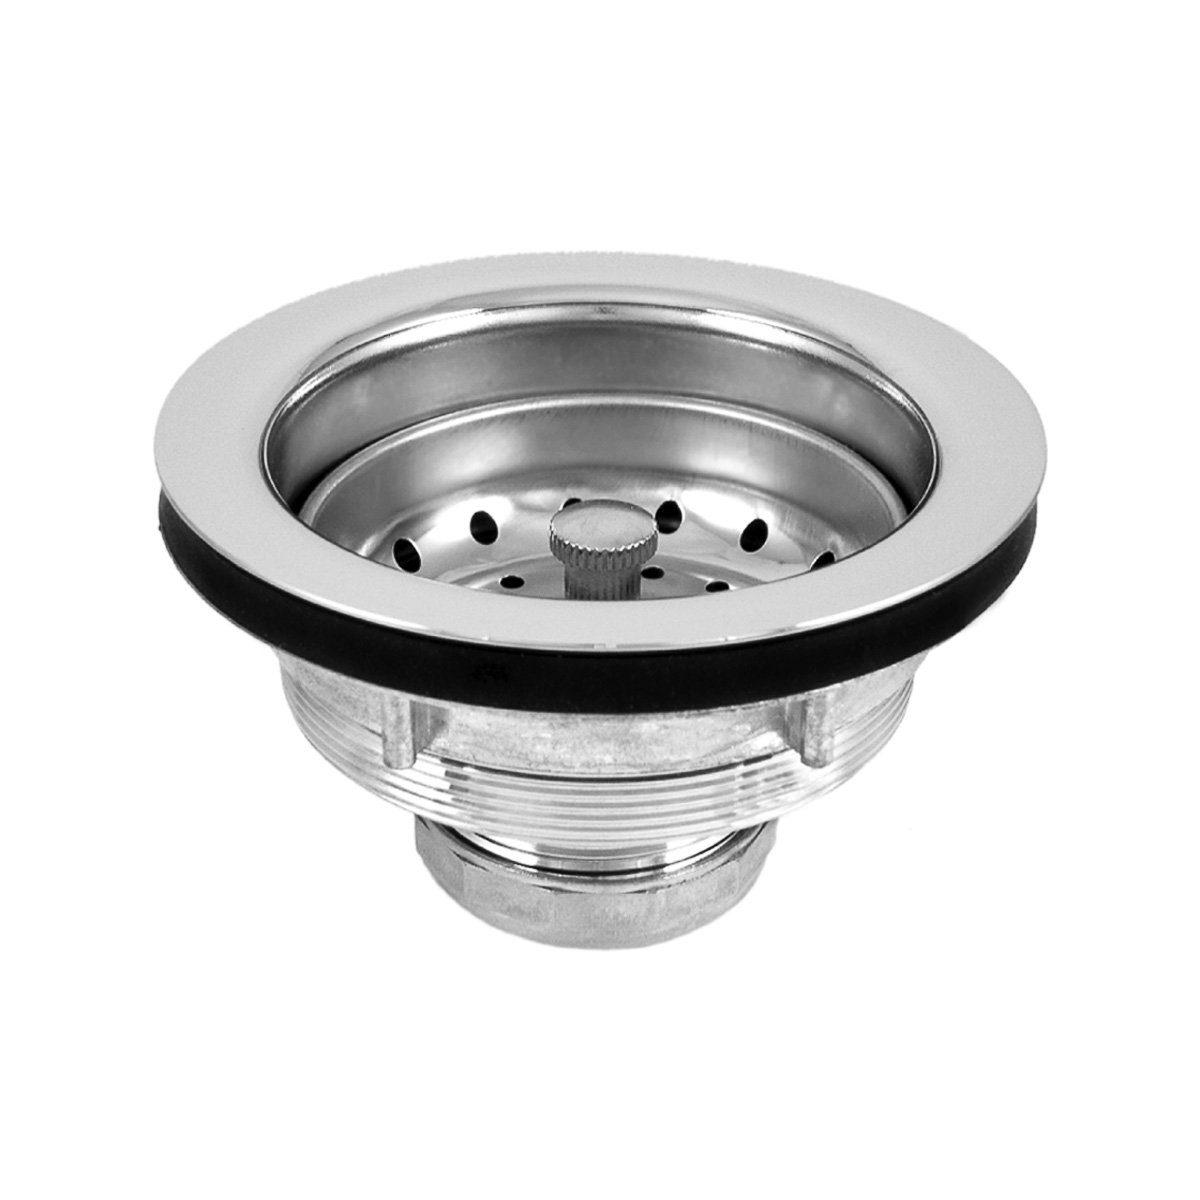 Dearborn L7 Lucky 7 Sink Basket Strainer, Chrome Plated Brass Body w/SS Basket, Metal Post, Heavy Locknut, Rubber Stopper, Thick Washer, Machine Cut Threads.